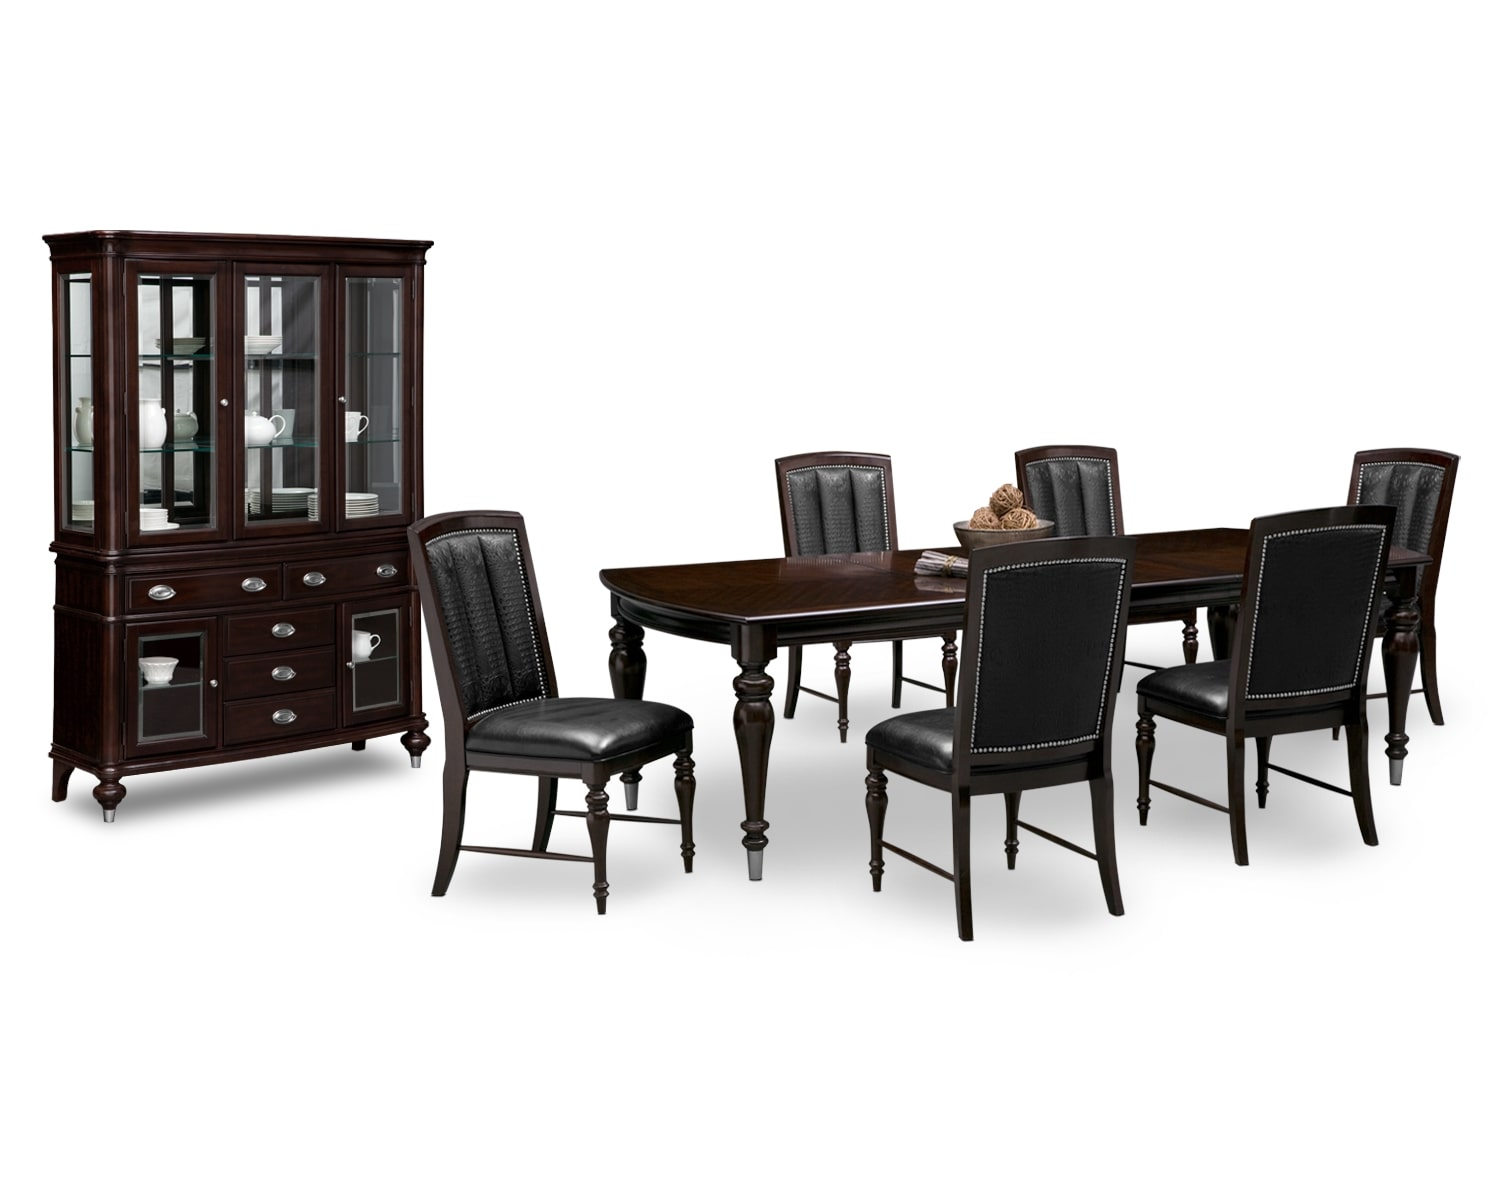 Black and white dining room sets - The Esquire Collection Cherry